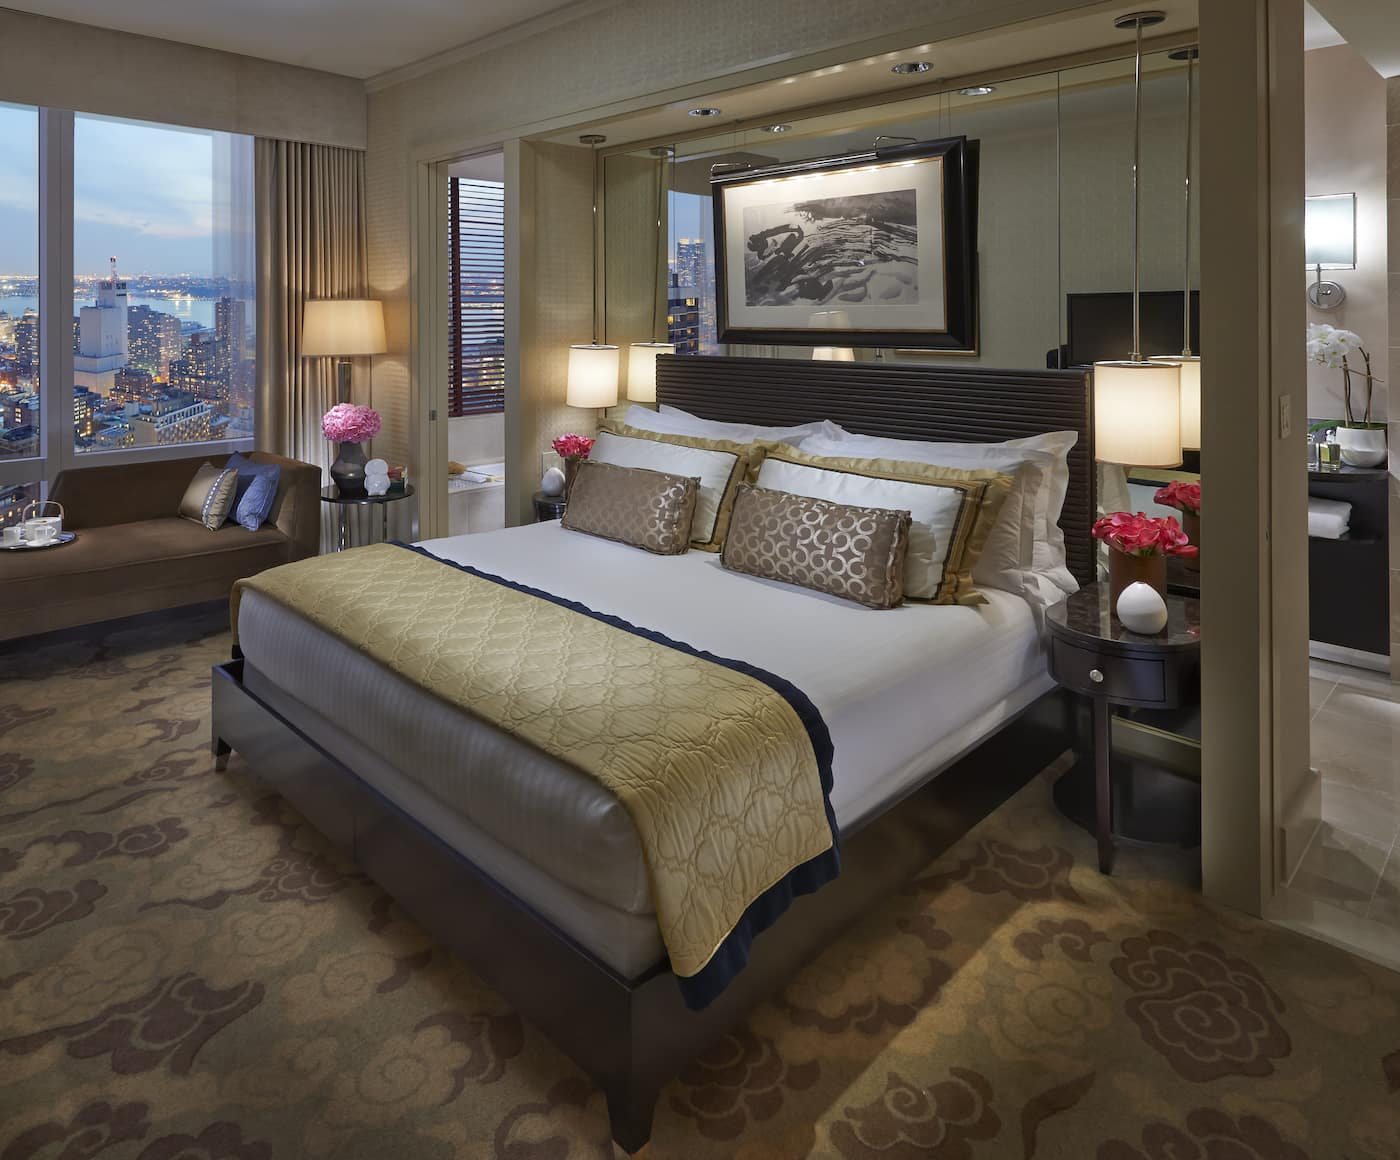 Hudson River View Room bed